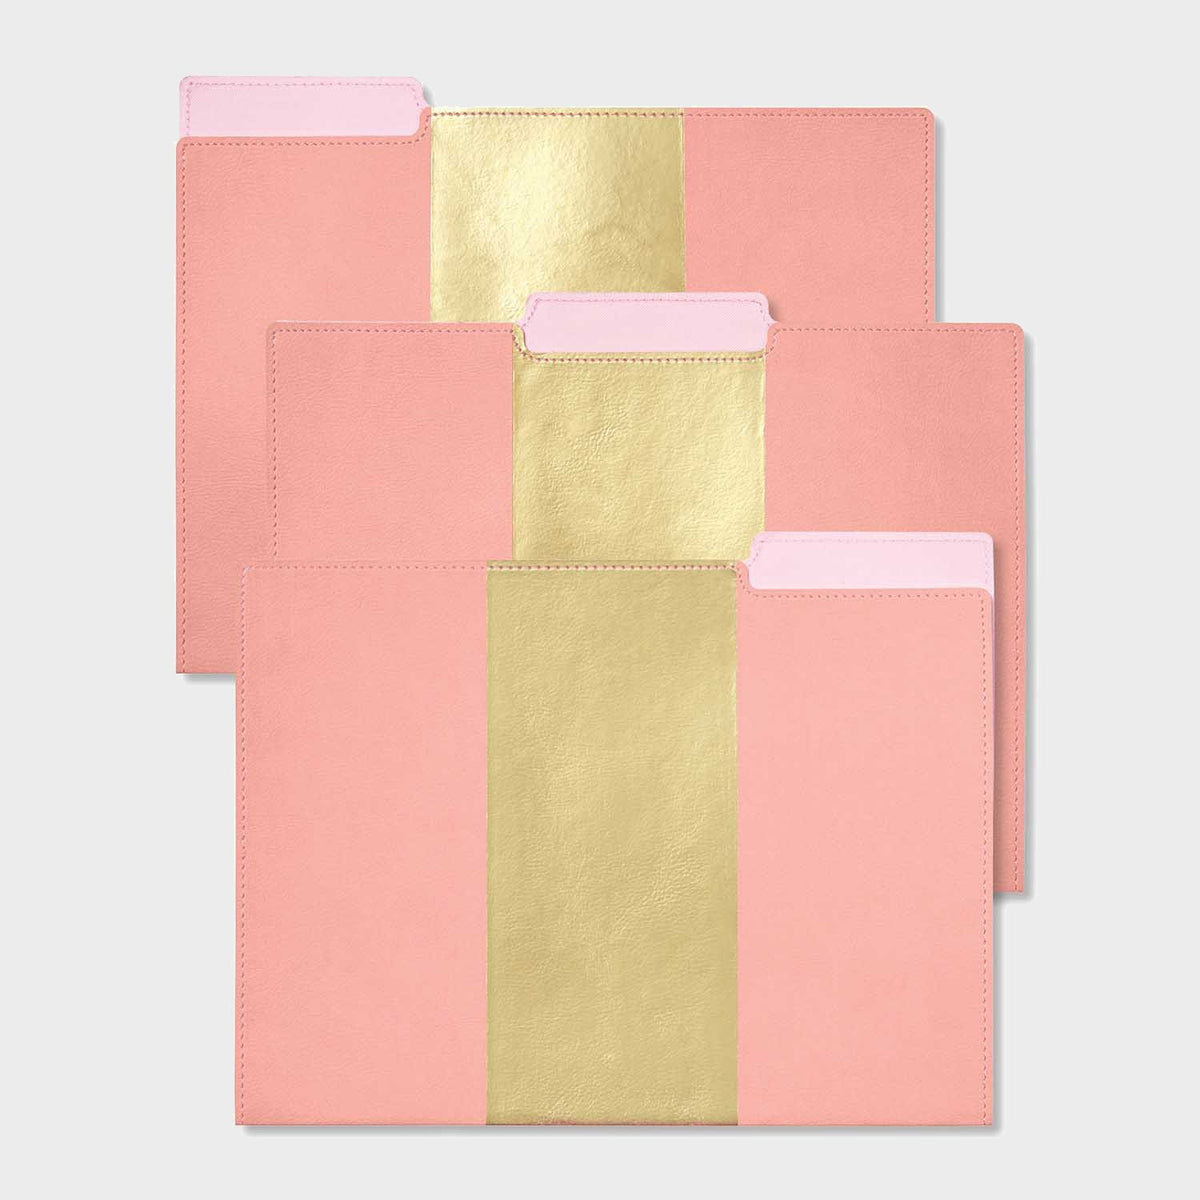 Pink Leatherette File Folders